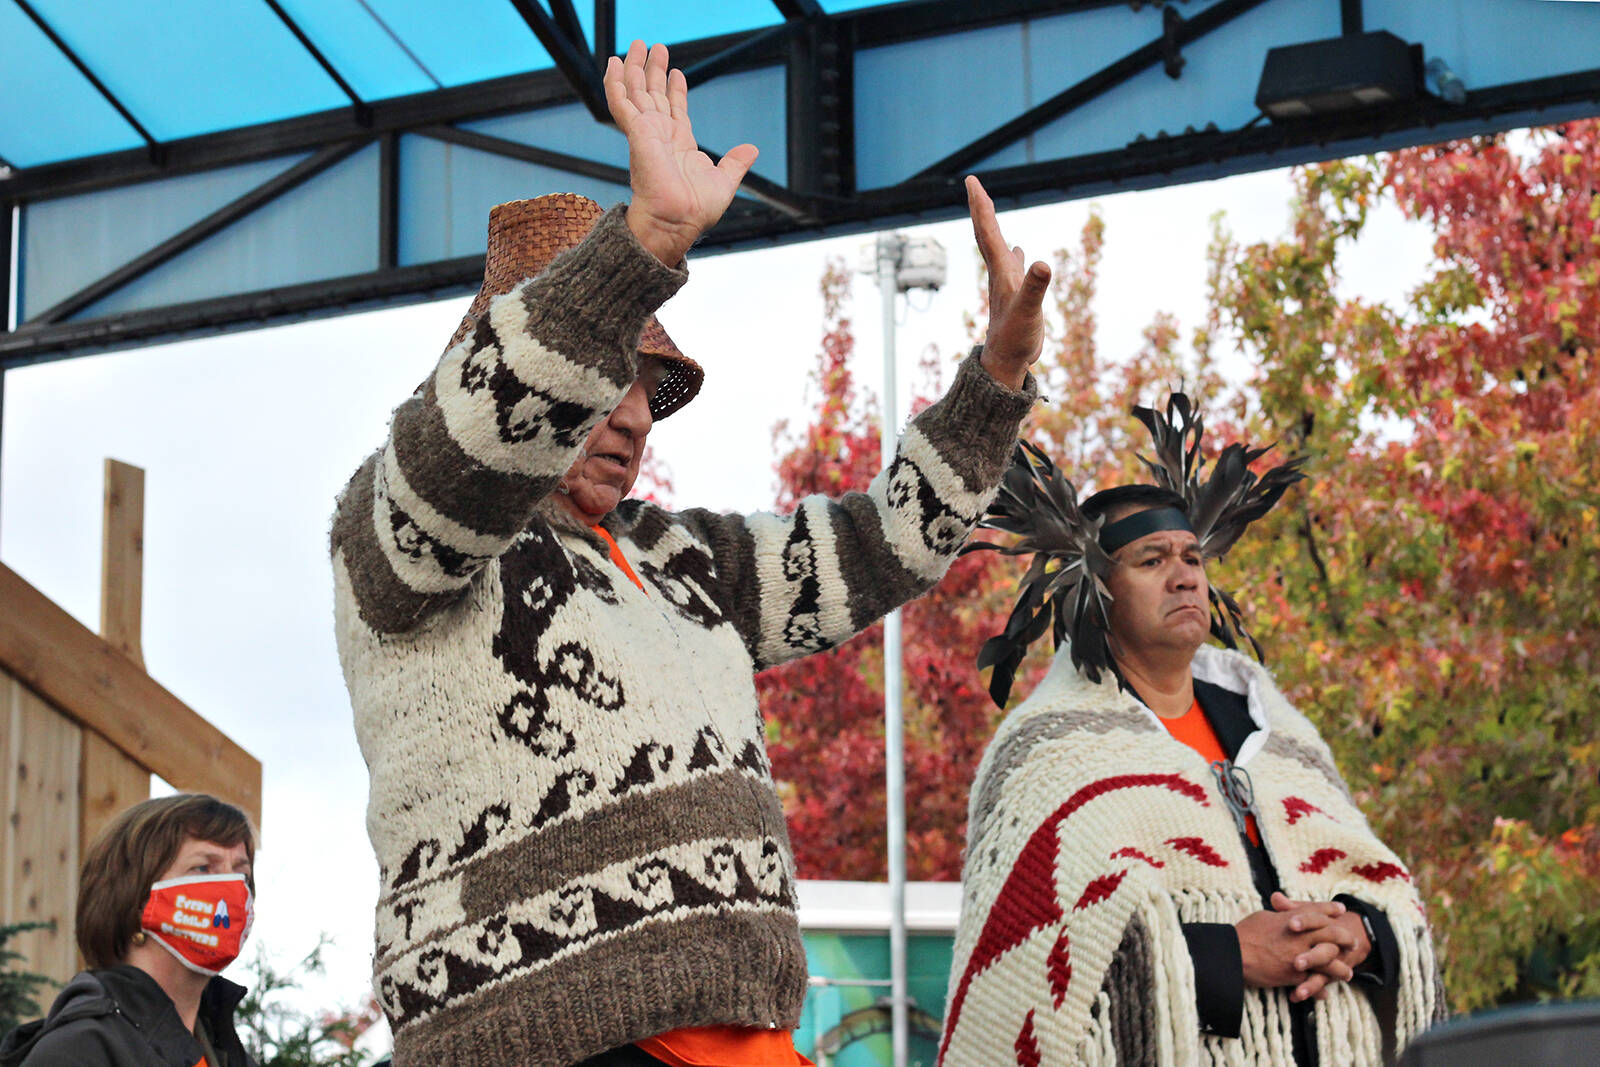 Snuneymuxw Elder Gary Manson, front, with Nanaimo MLA Sheila Malcolmson and Snuneymuxw Chief Mike Wyse looking on, asks people to turn toward the sea before he says a closing prayer Thursday, Sept. 30, at a National Day for Truth and Reconciliation event at Maffeo Sutton Park. (Greg Sakaki/News Bulletin)